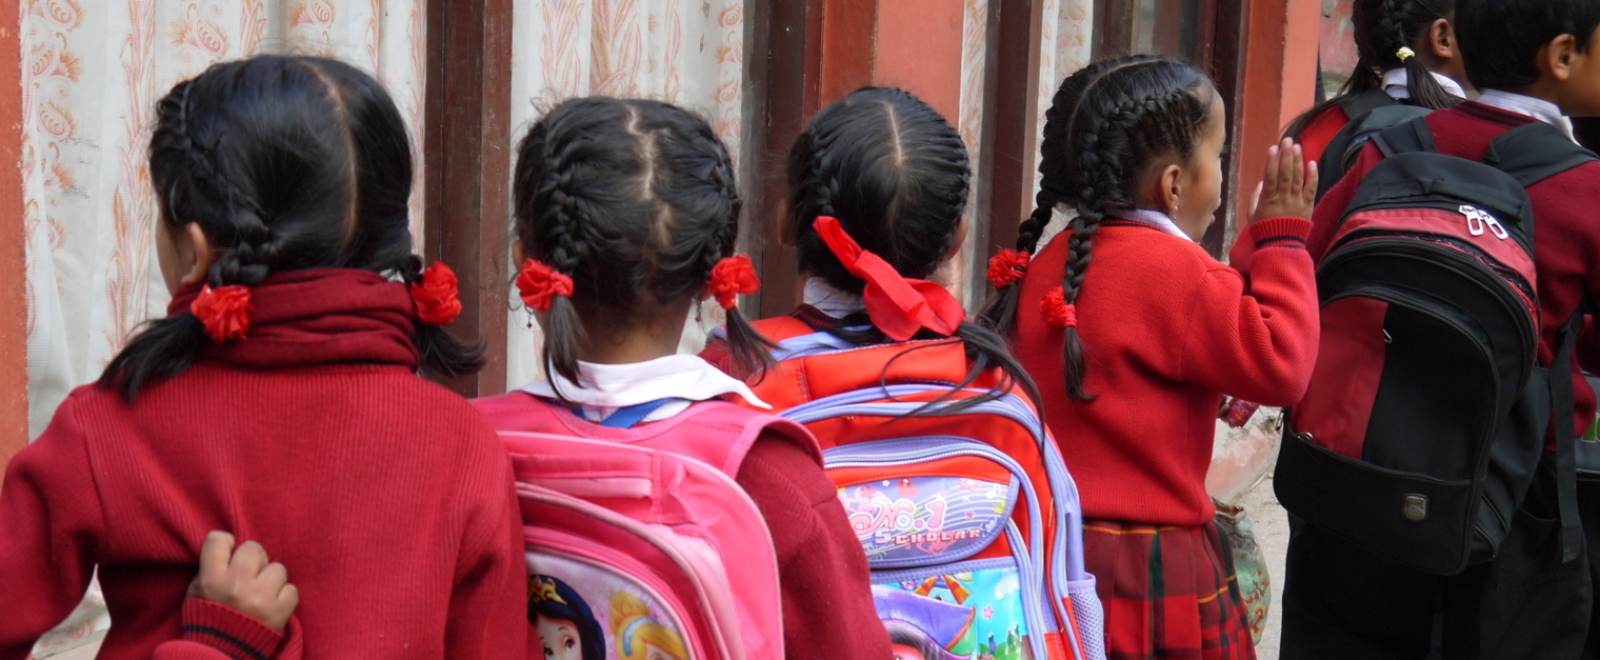 Children line up with their backpacks outside their classroom in Nepal